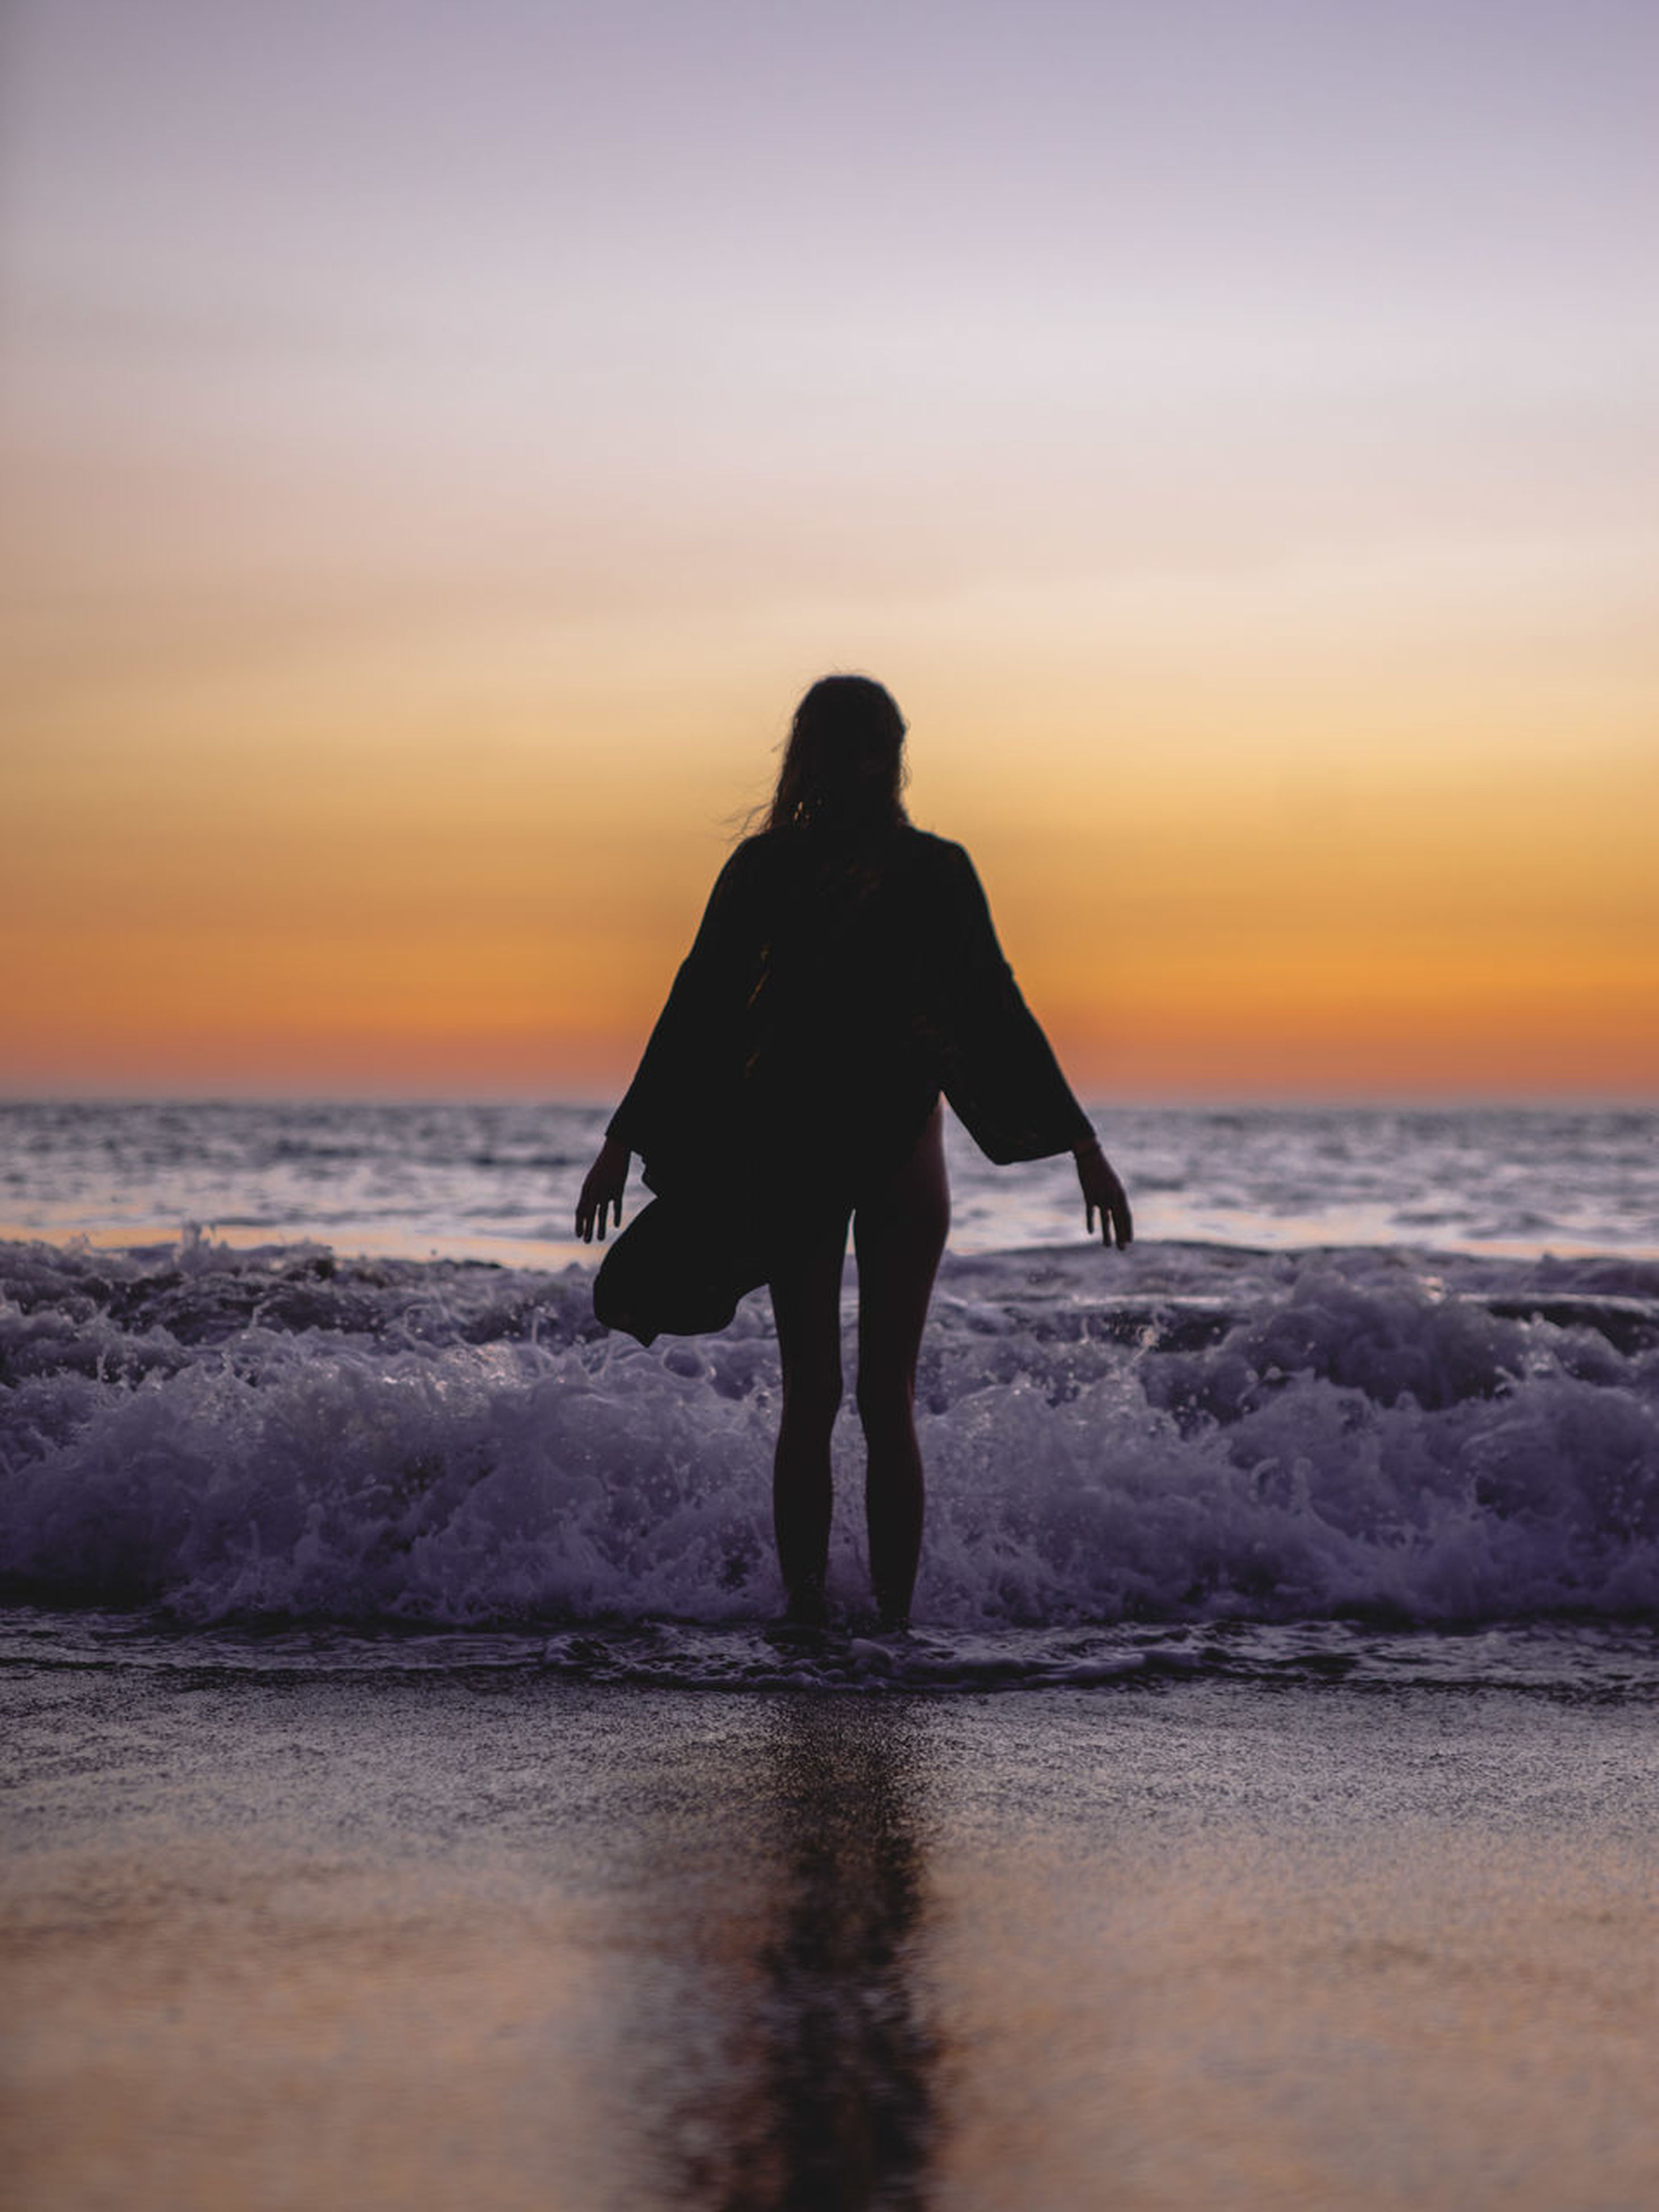 sea, sunset, water, beach, horizon over water, beauty in nature, silhouette, nature, sky, scenics, one person, real people, leisure activity, full length, wave, tranquility, lifestyles, tranquil scene, outdoors, walking, rear view, women, vacations, standing, men, ankle deep in water, day, people